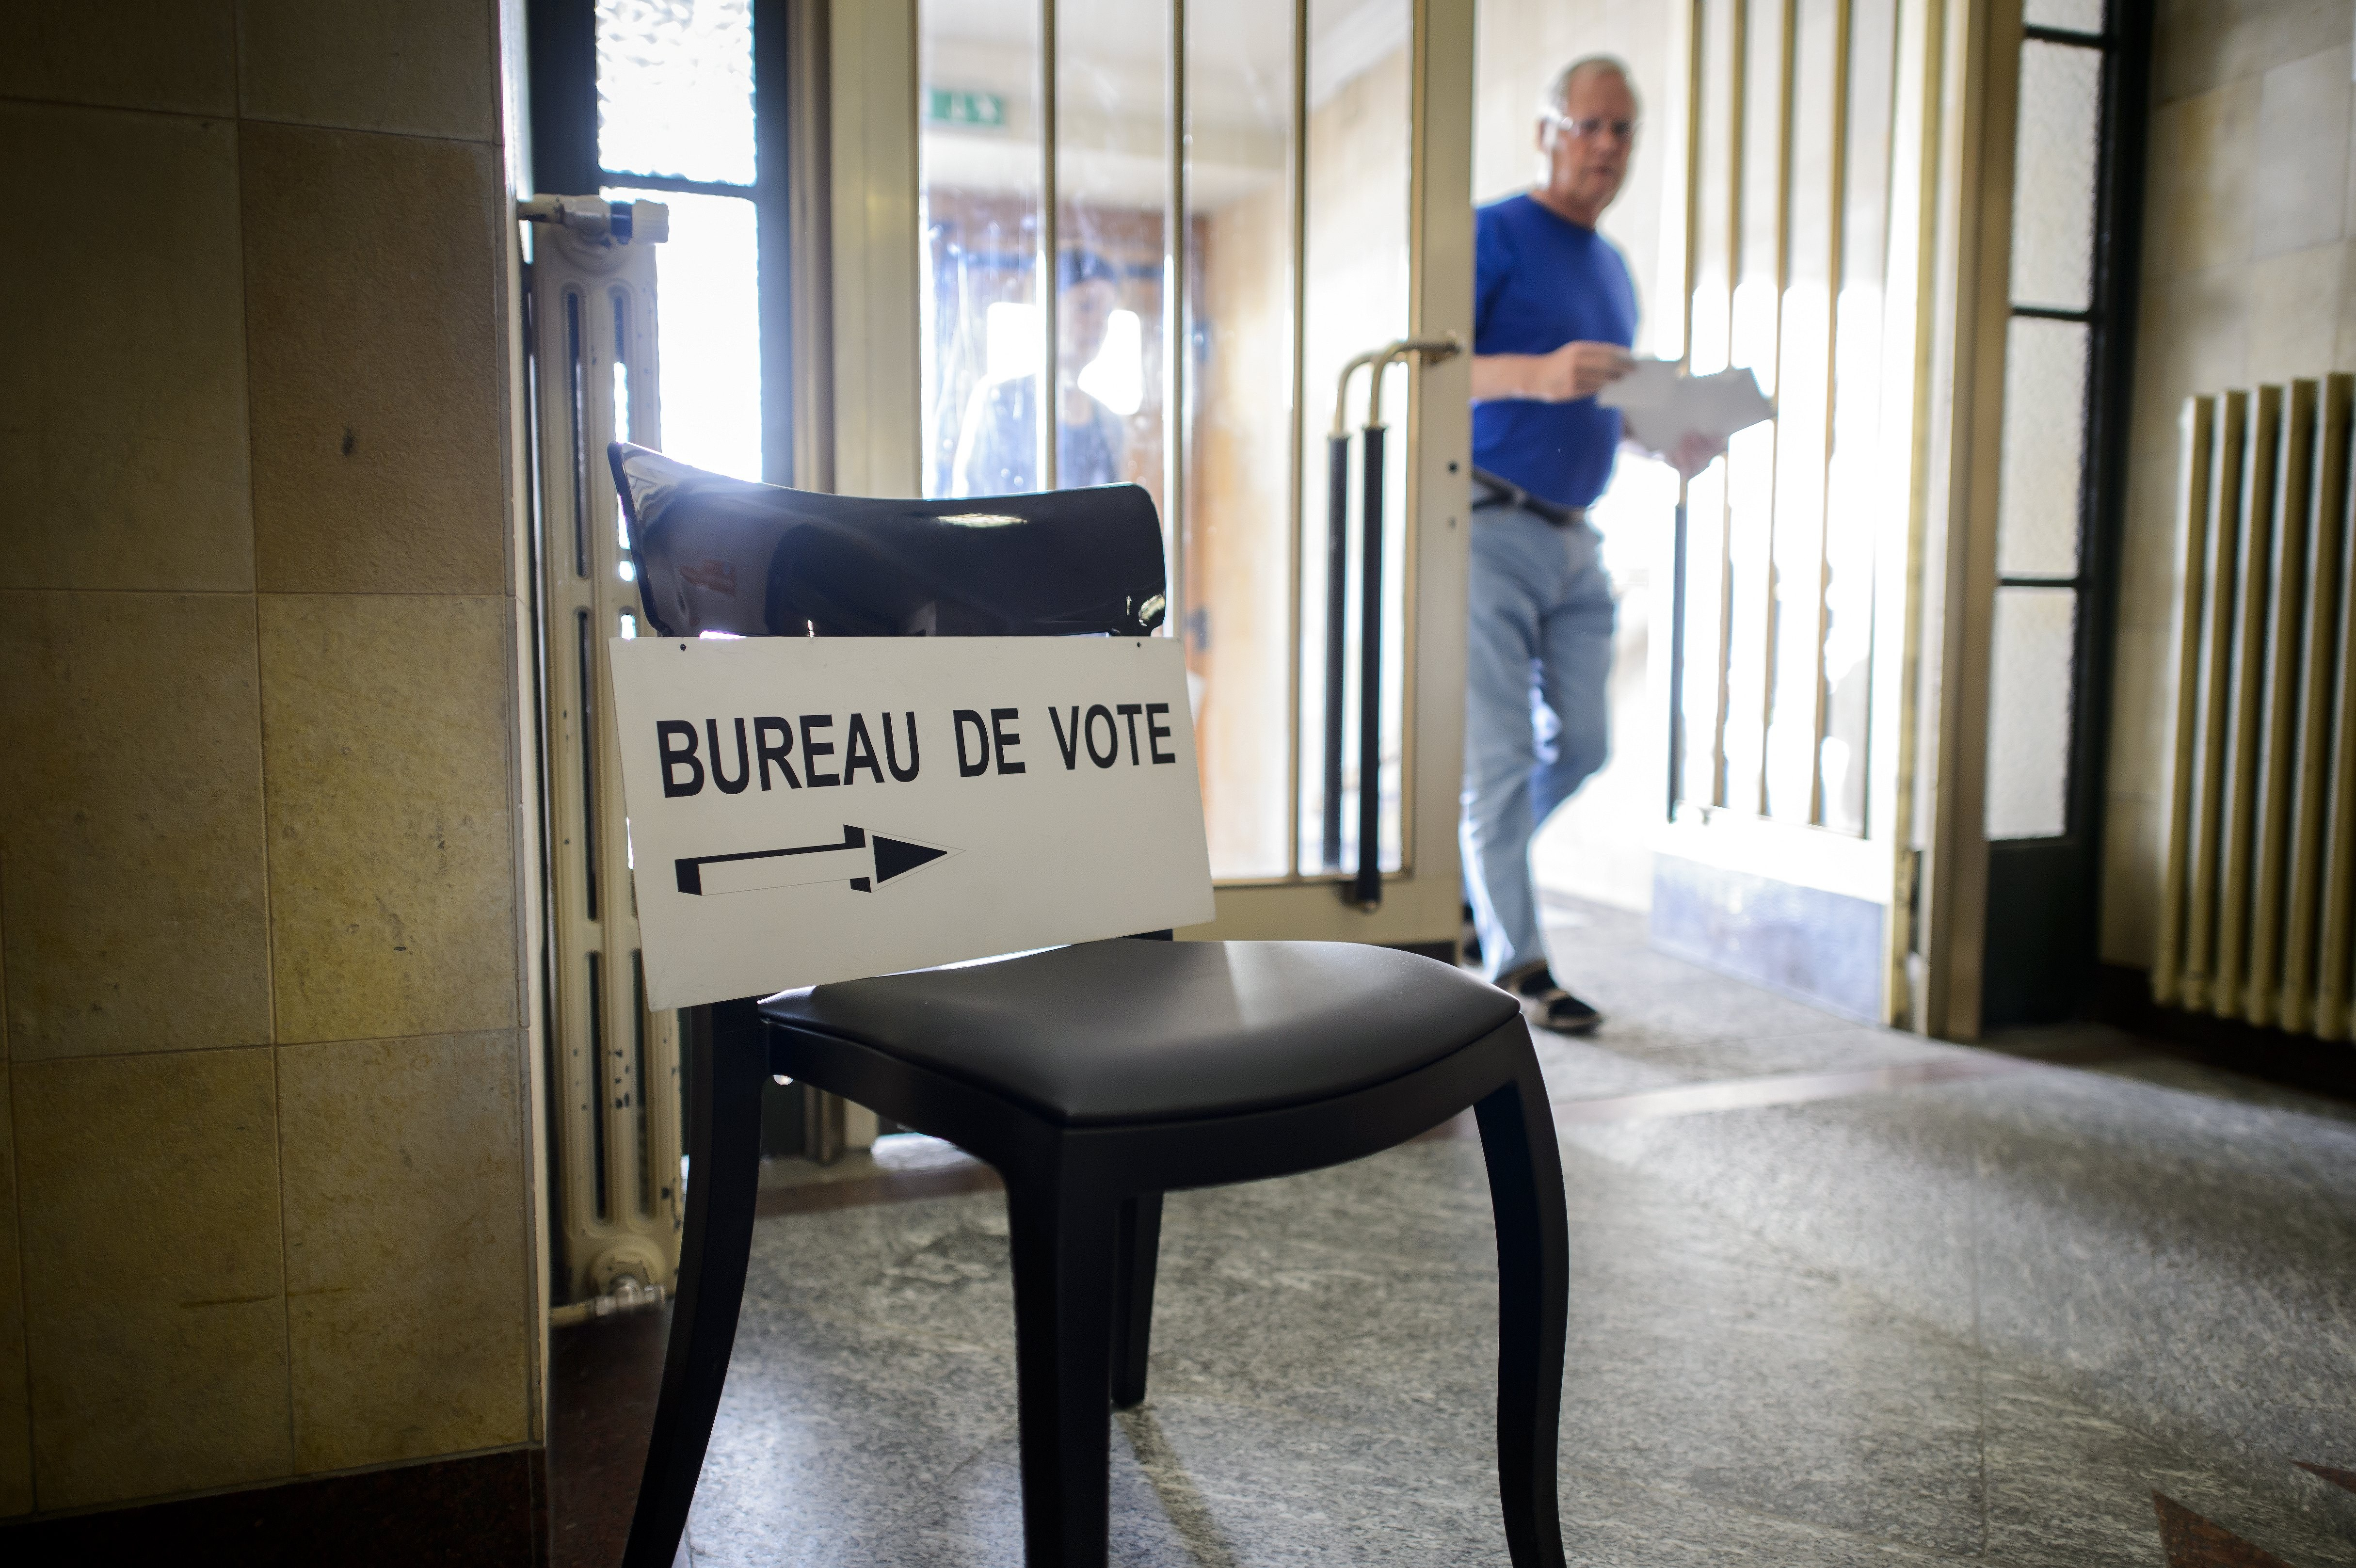 A man arrives to casts his ballot during a referendum on May 18, 2014 in Bulle, western Switzerland.